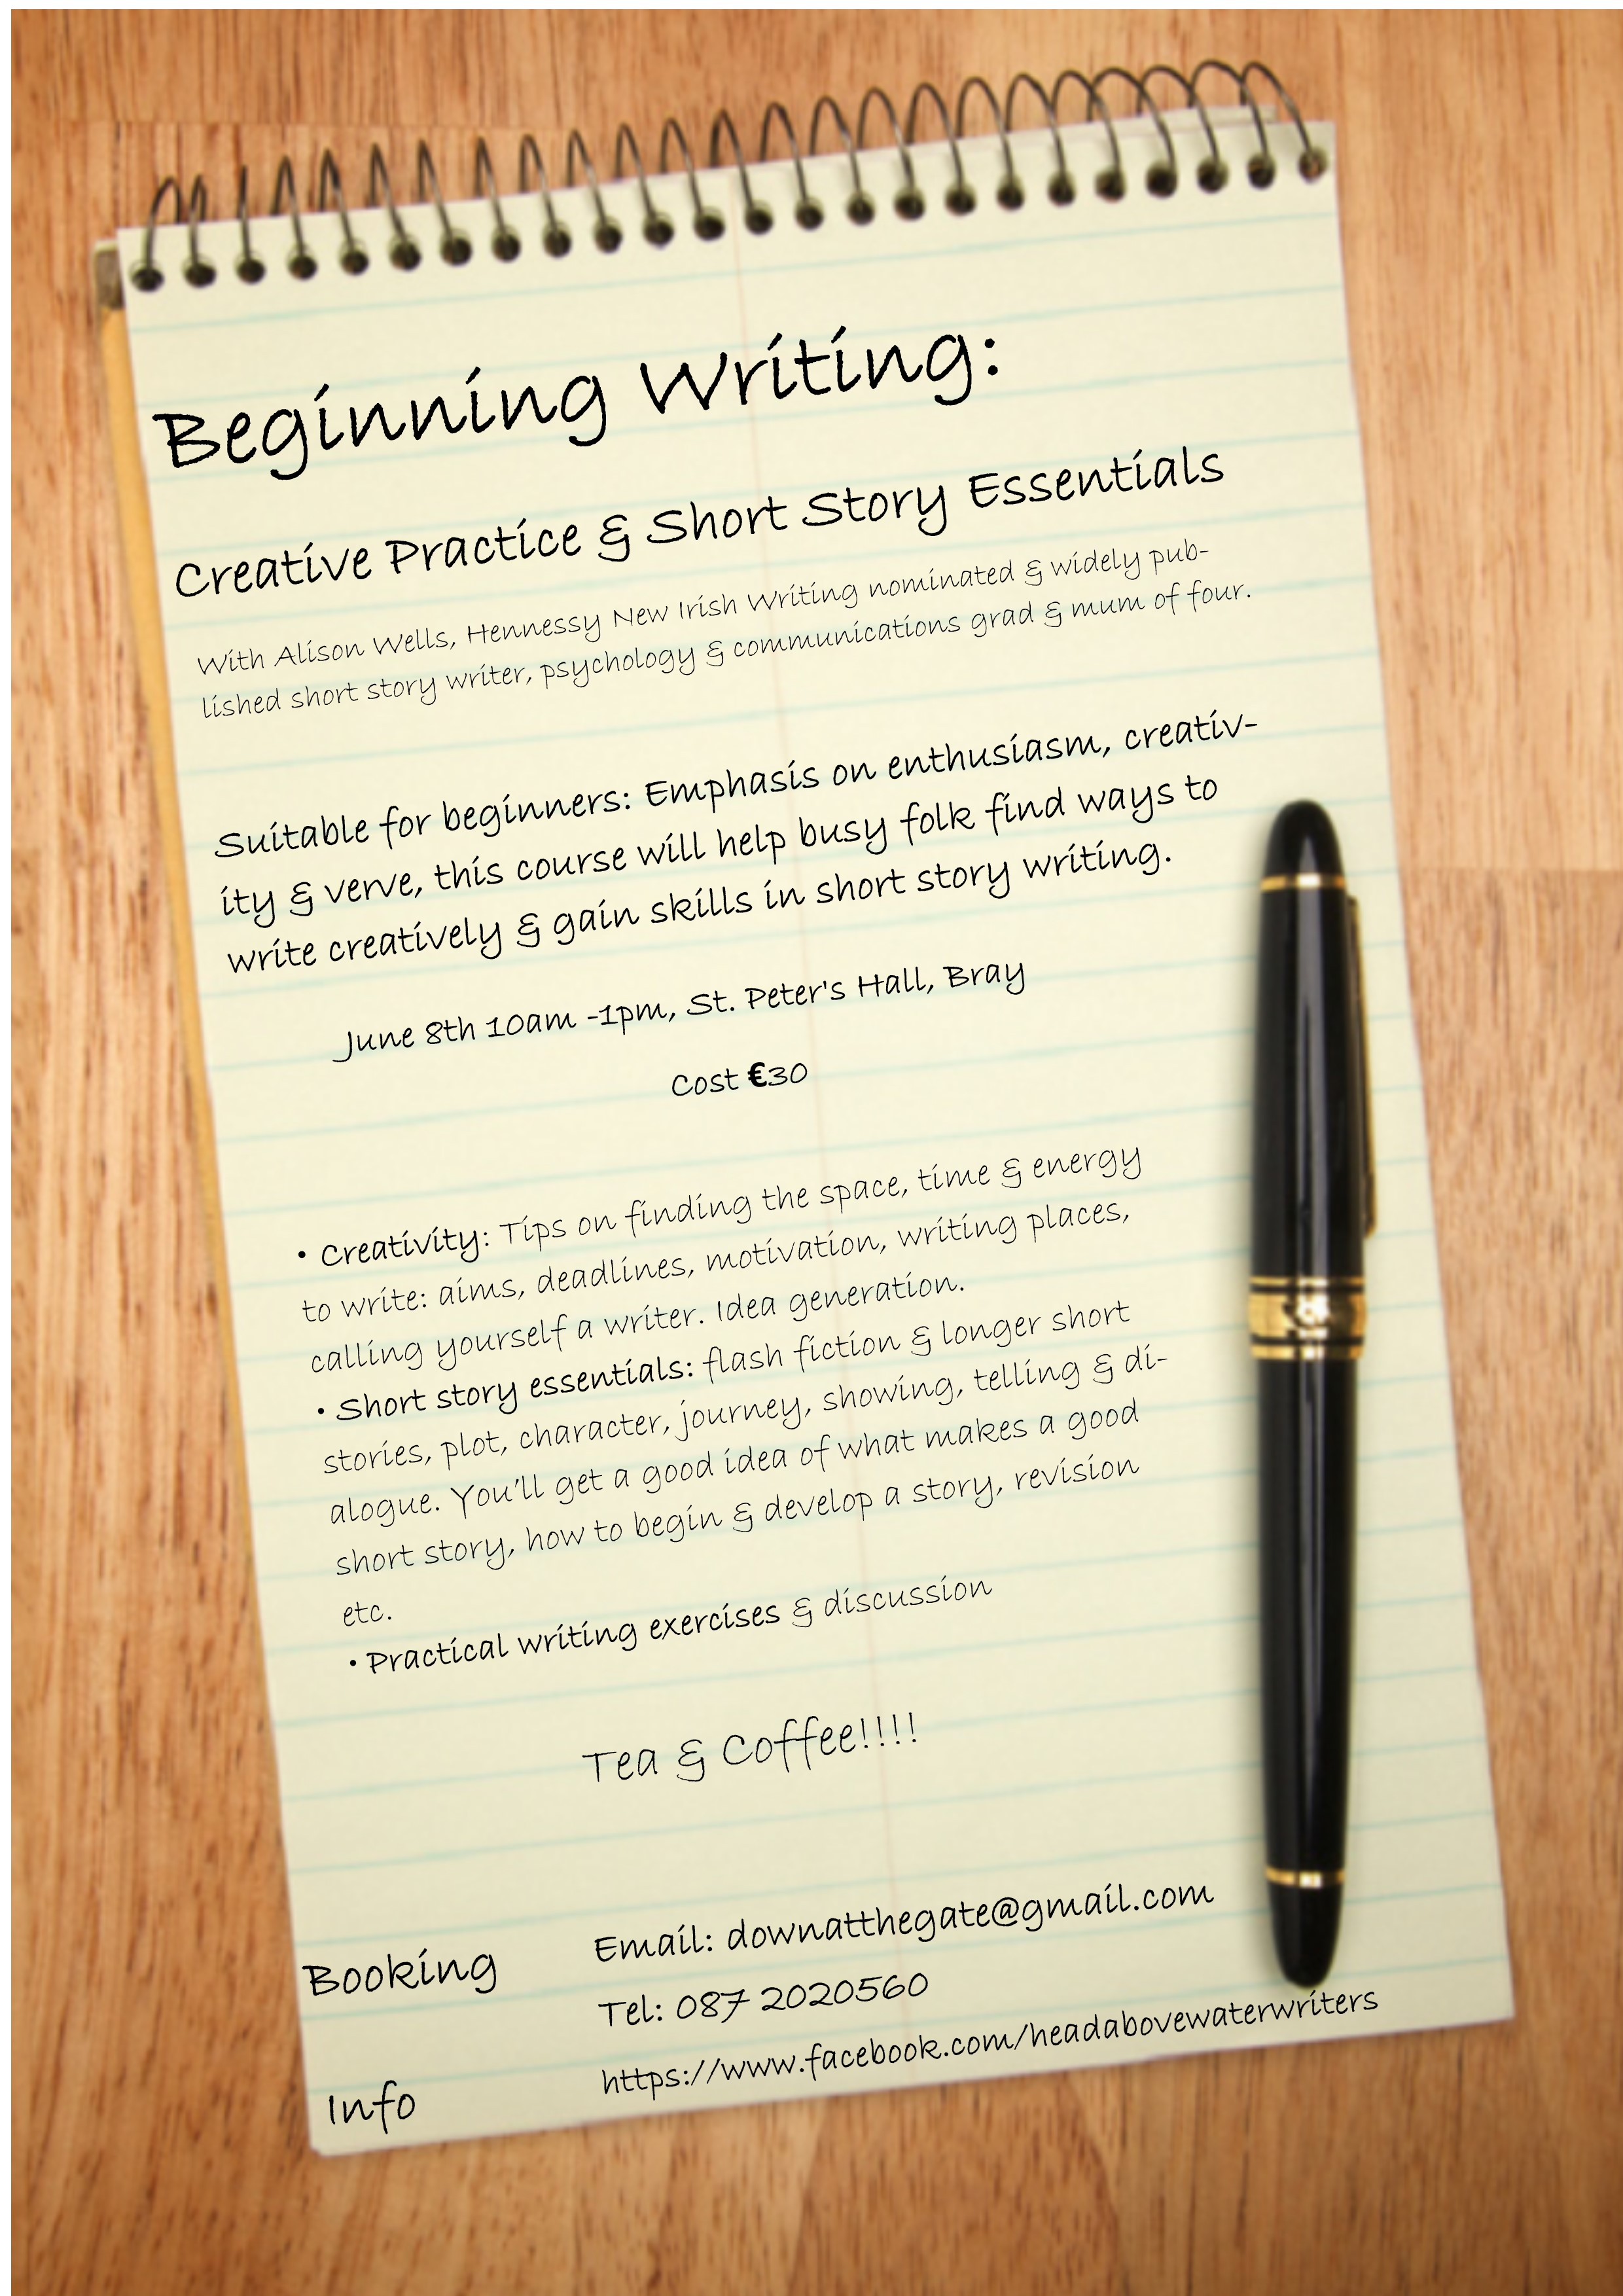 short creative writing courses scotland Our creative writing courses support you in finding your own voice as a writer and gain experience writing in a variety of literary forms.